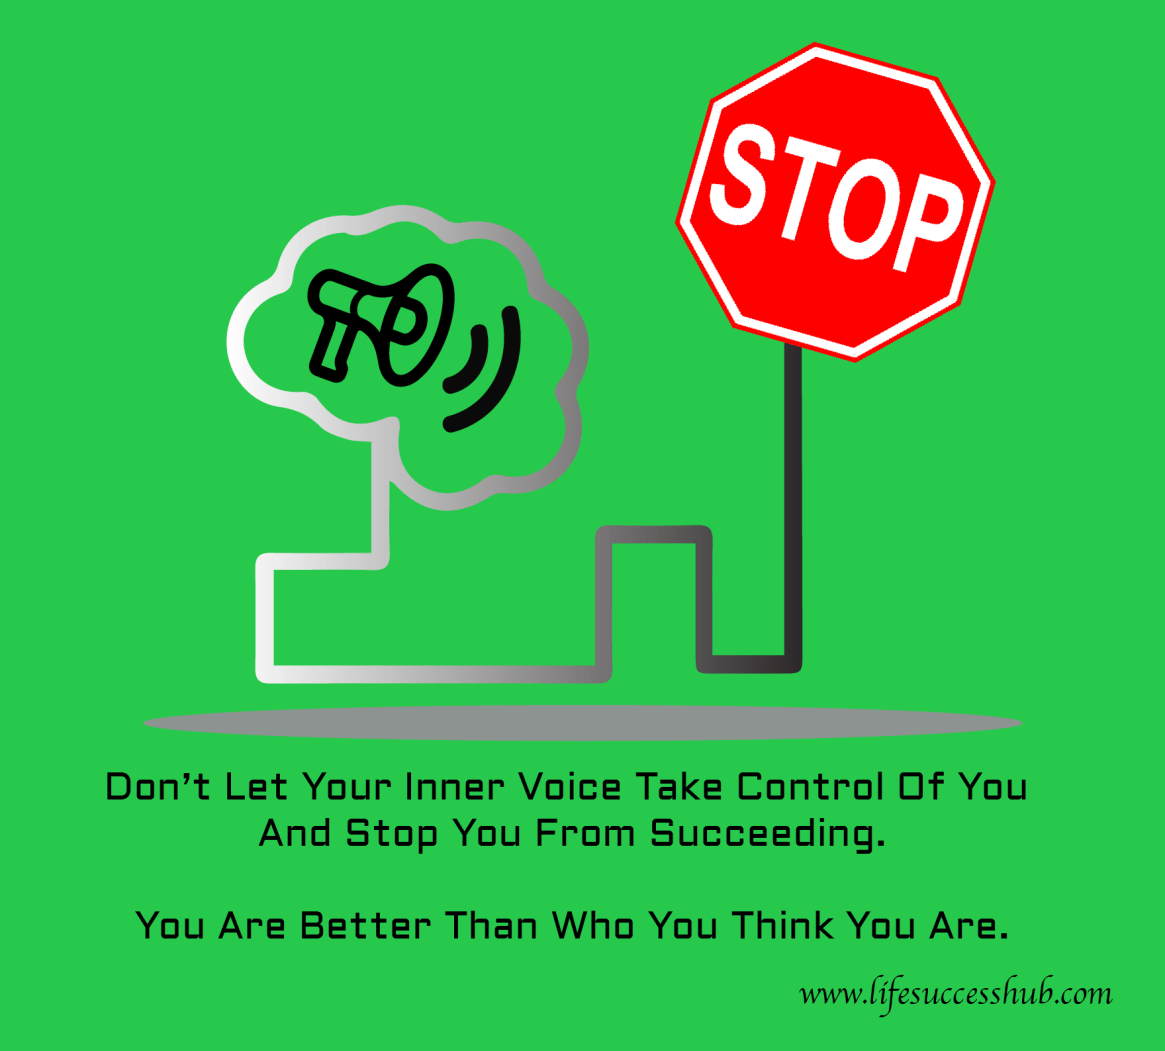 You are better than who you think you are